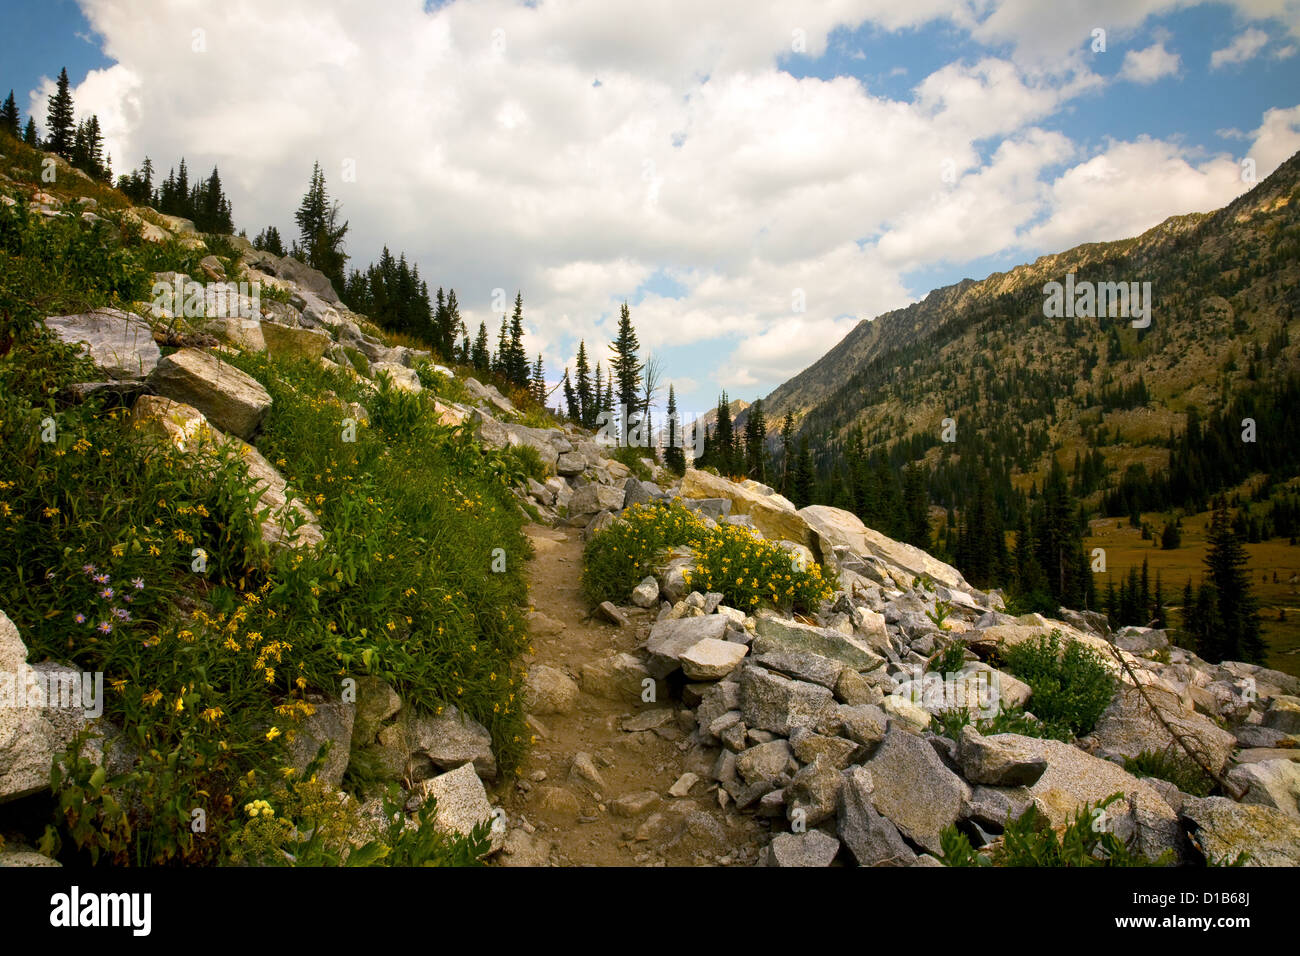 East Lostine Valley Trail traversing above the meadows of the East Lostine River Valley in the Eagle Cap Wilderness - Stock Image